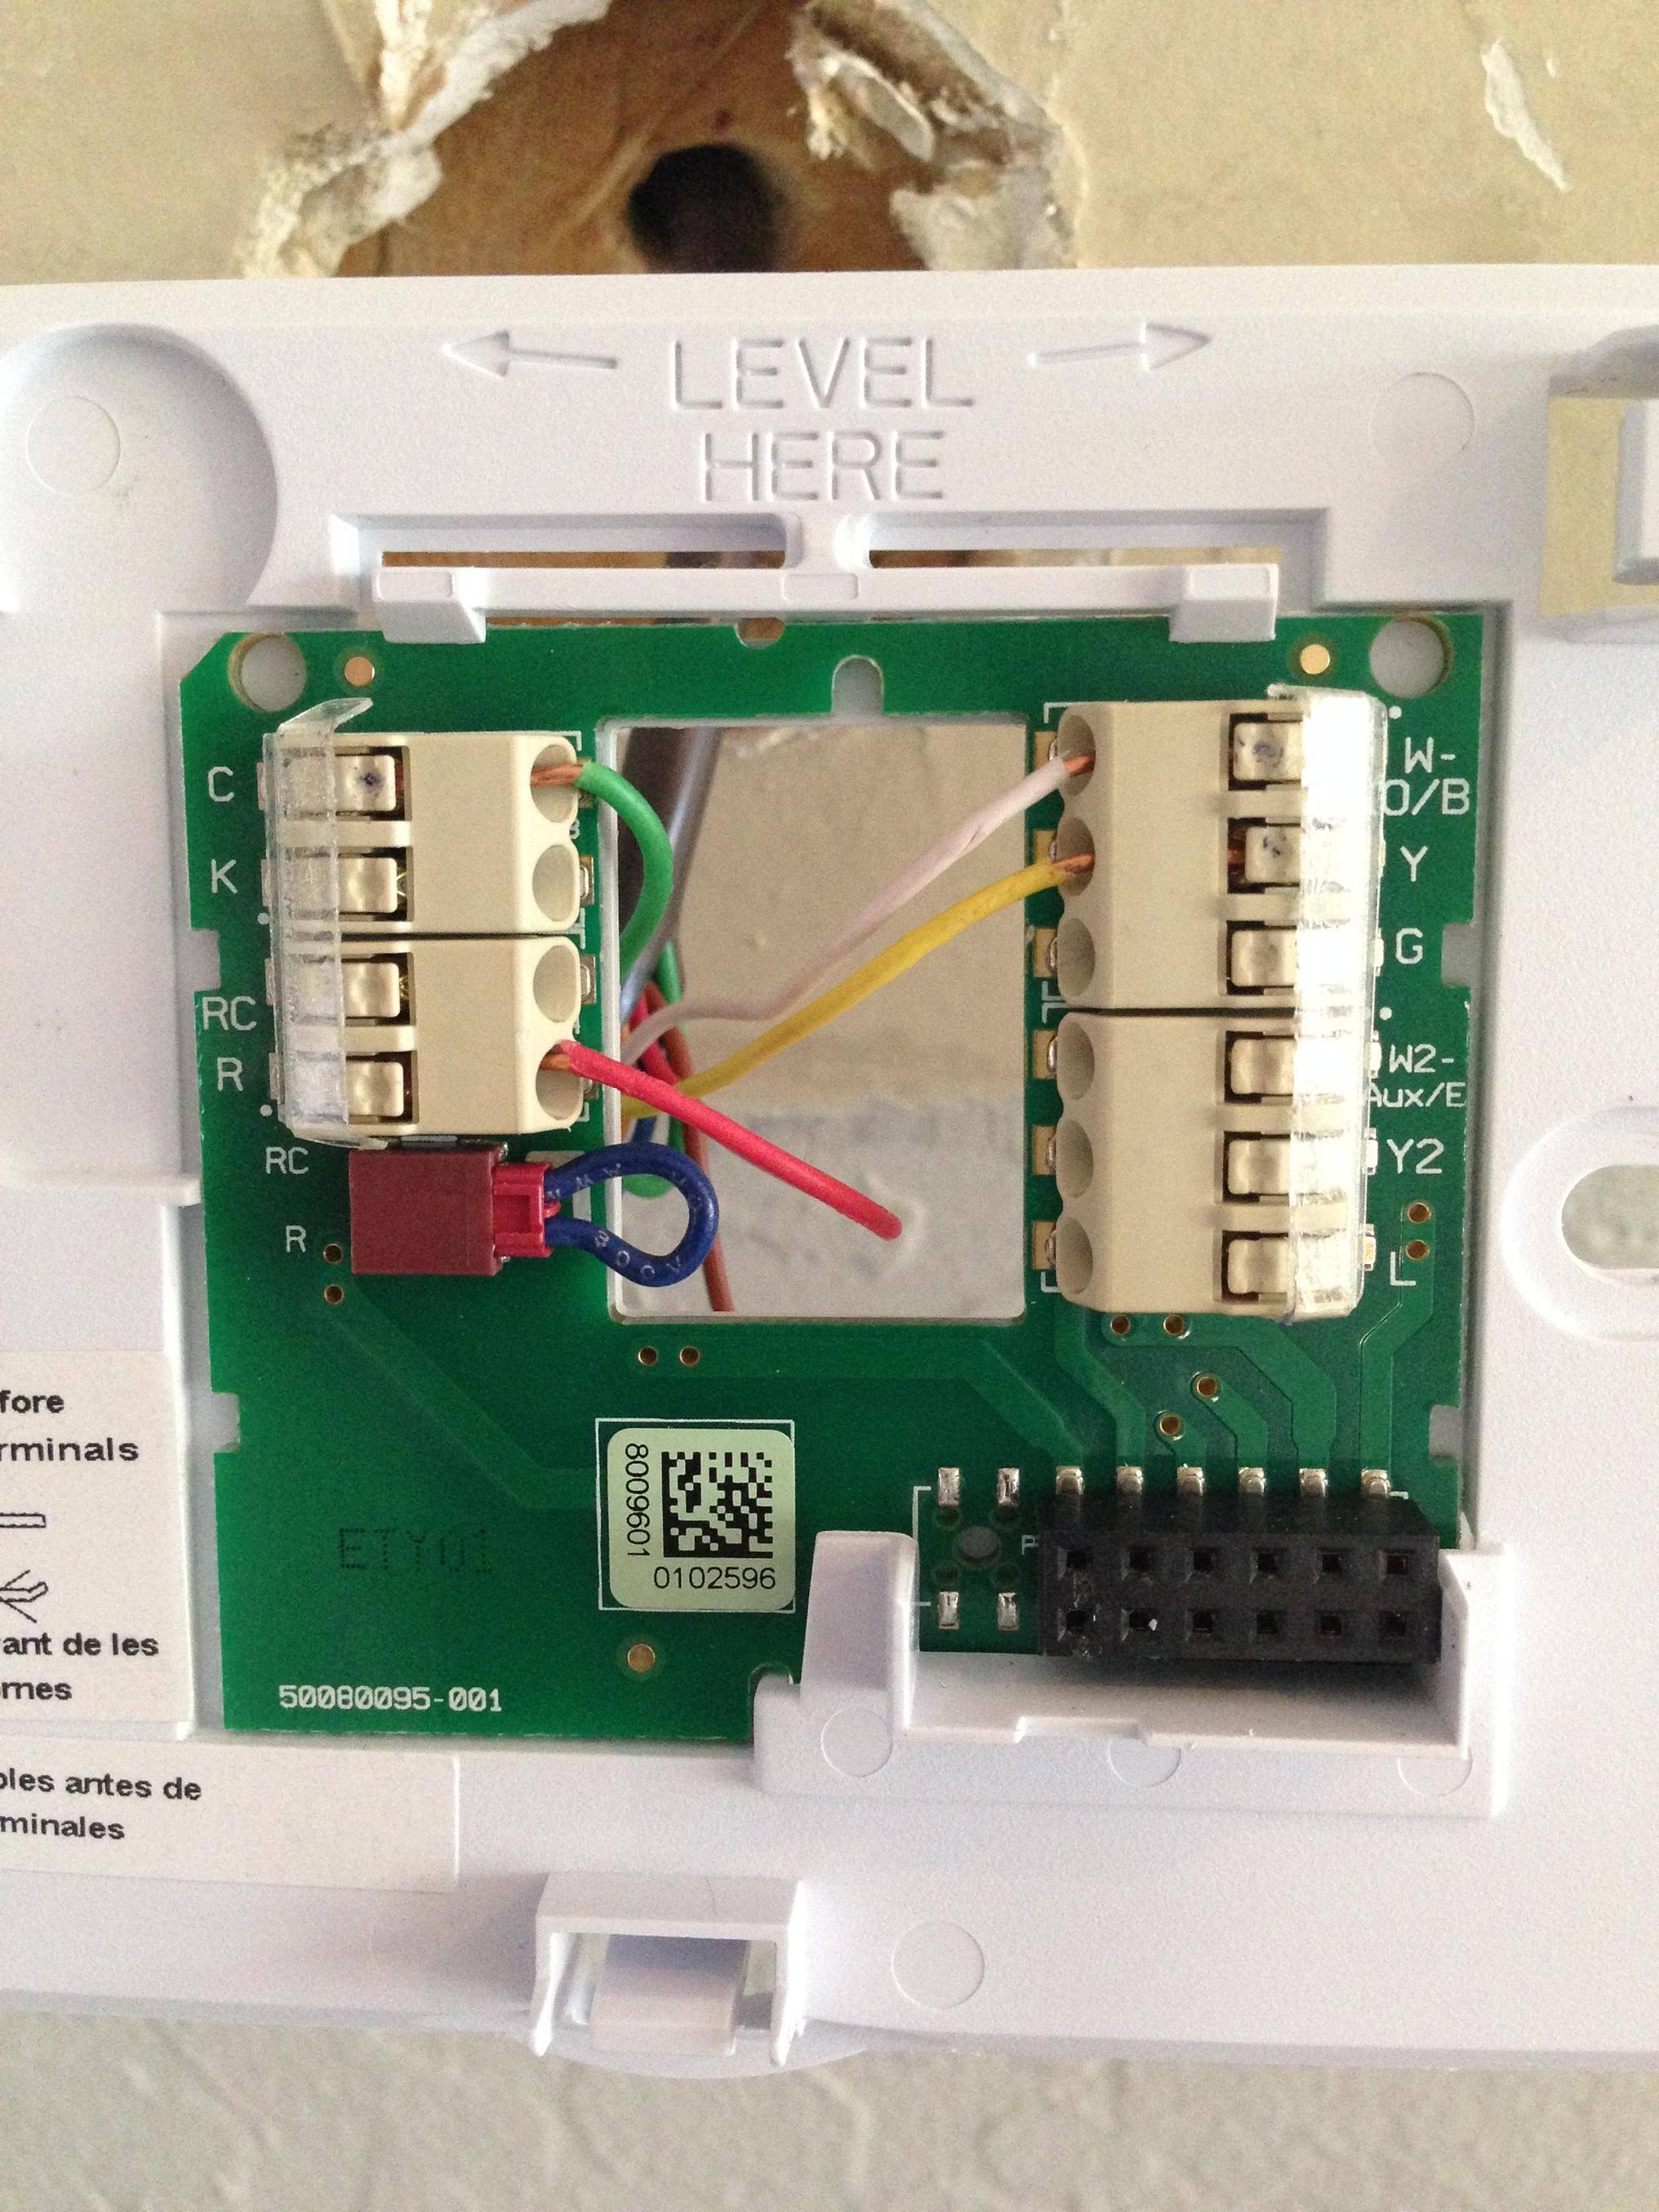 Thermostat Wiring Diagram As Well Honeywell Wi Fi Thermostat Wiring